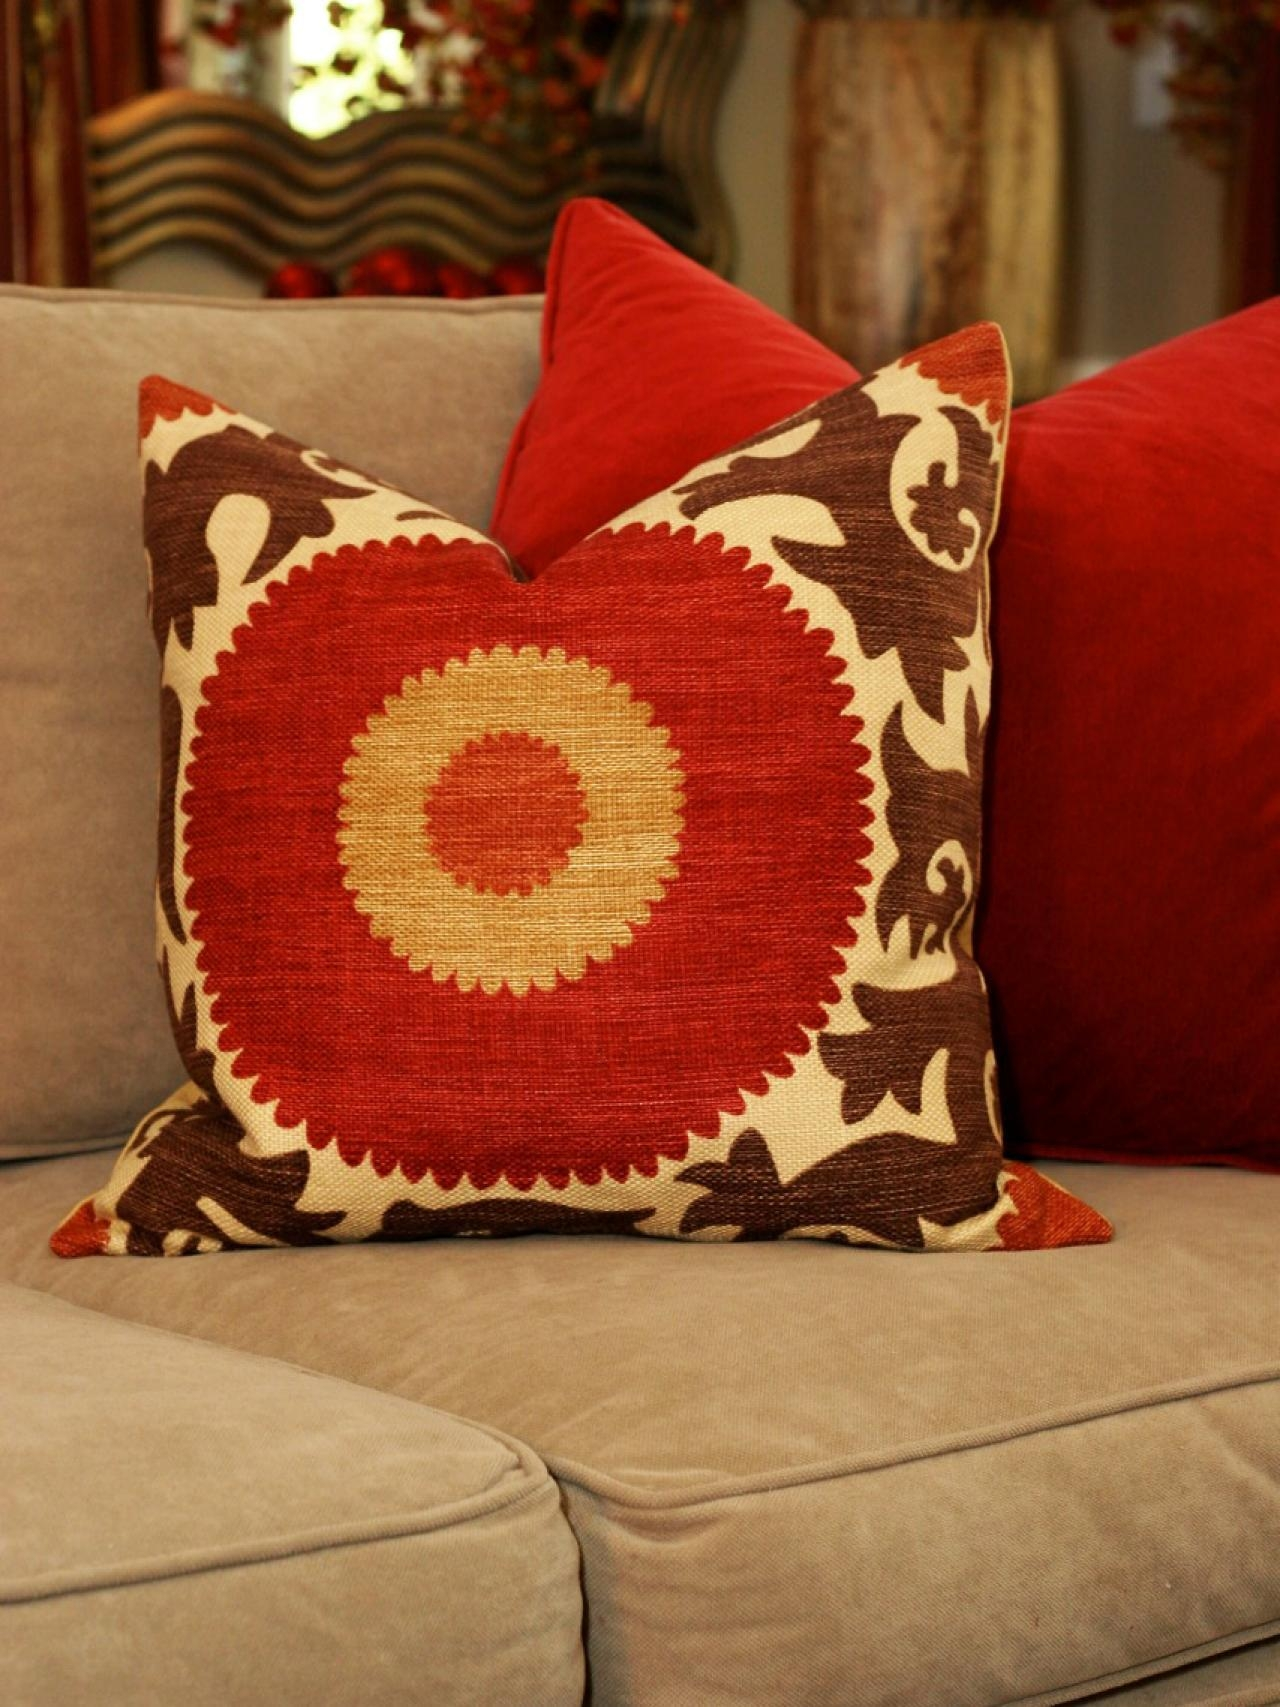 sofa throw pillows cheap childrens pull out bed 22 top red throws ideas